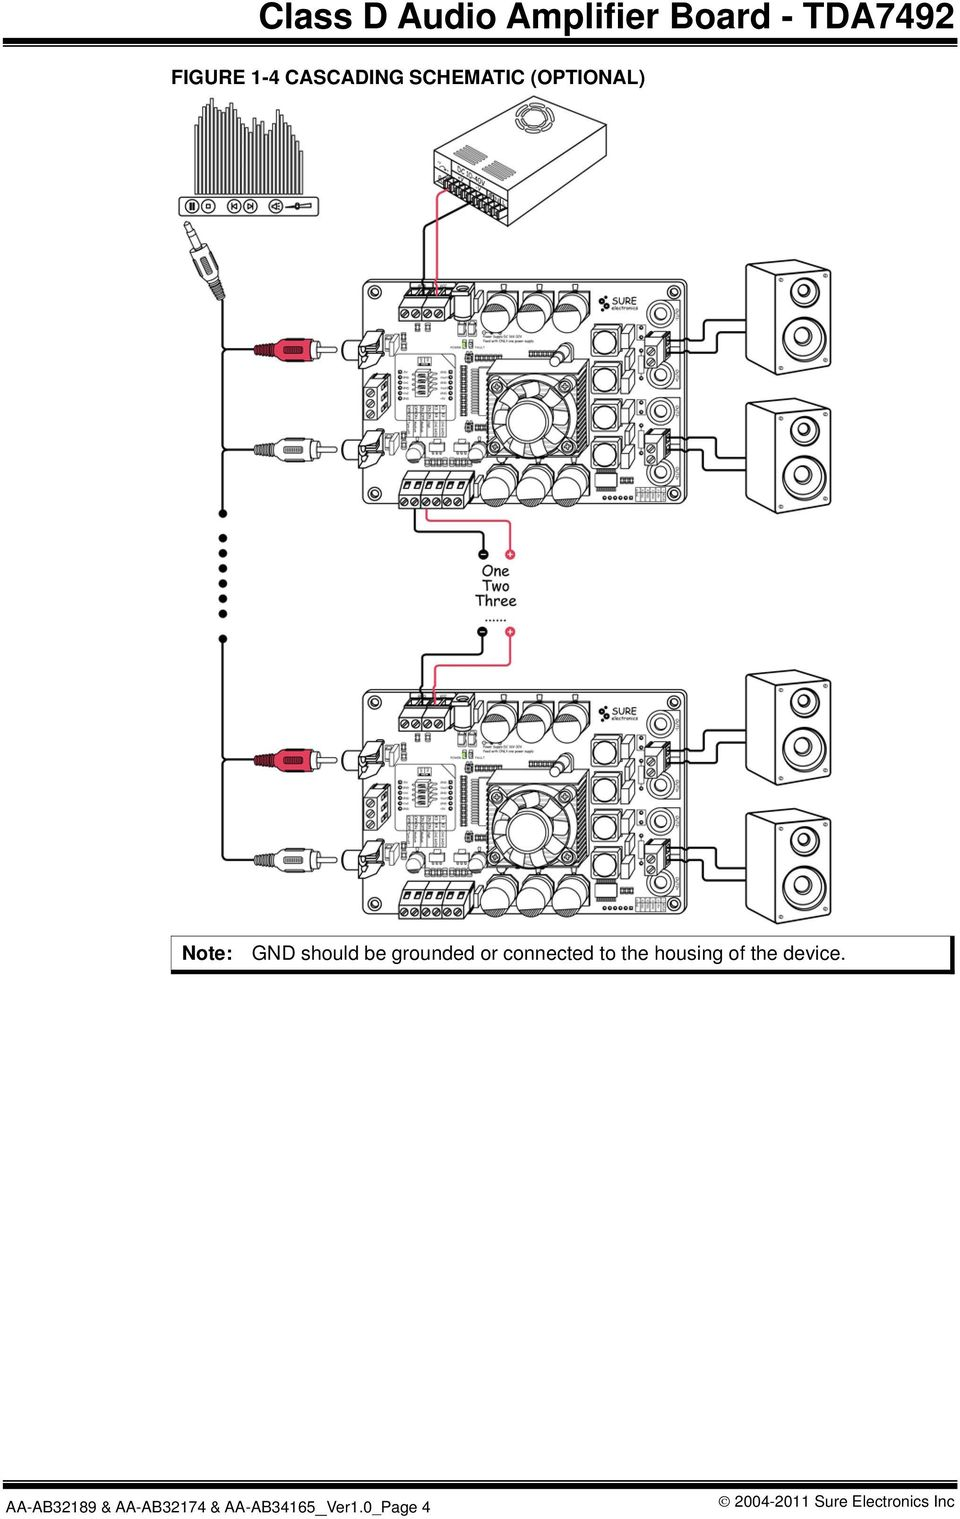 Class D Audio Amplifier Board Tda7492 User S Guide Pdf 20w Hifi Power With Tda2040 Schematic Design Grounded Or Connected To The Housing Of Device